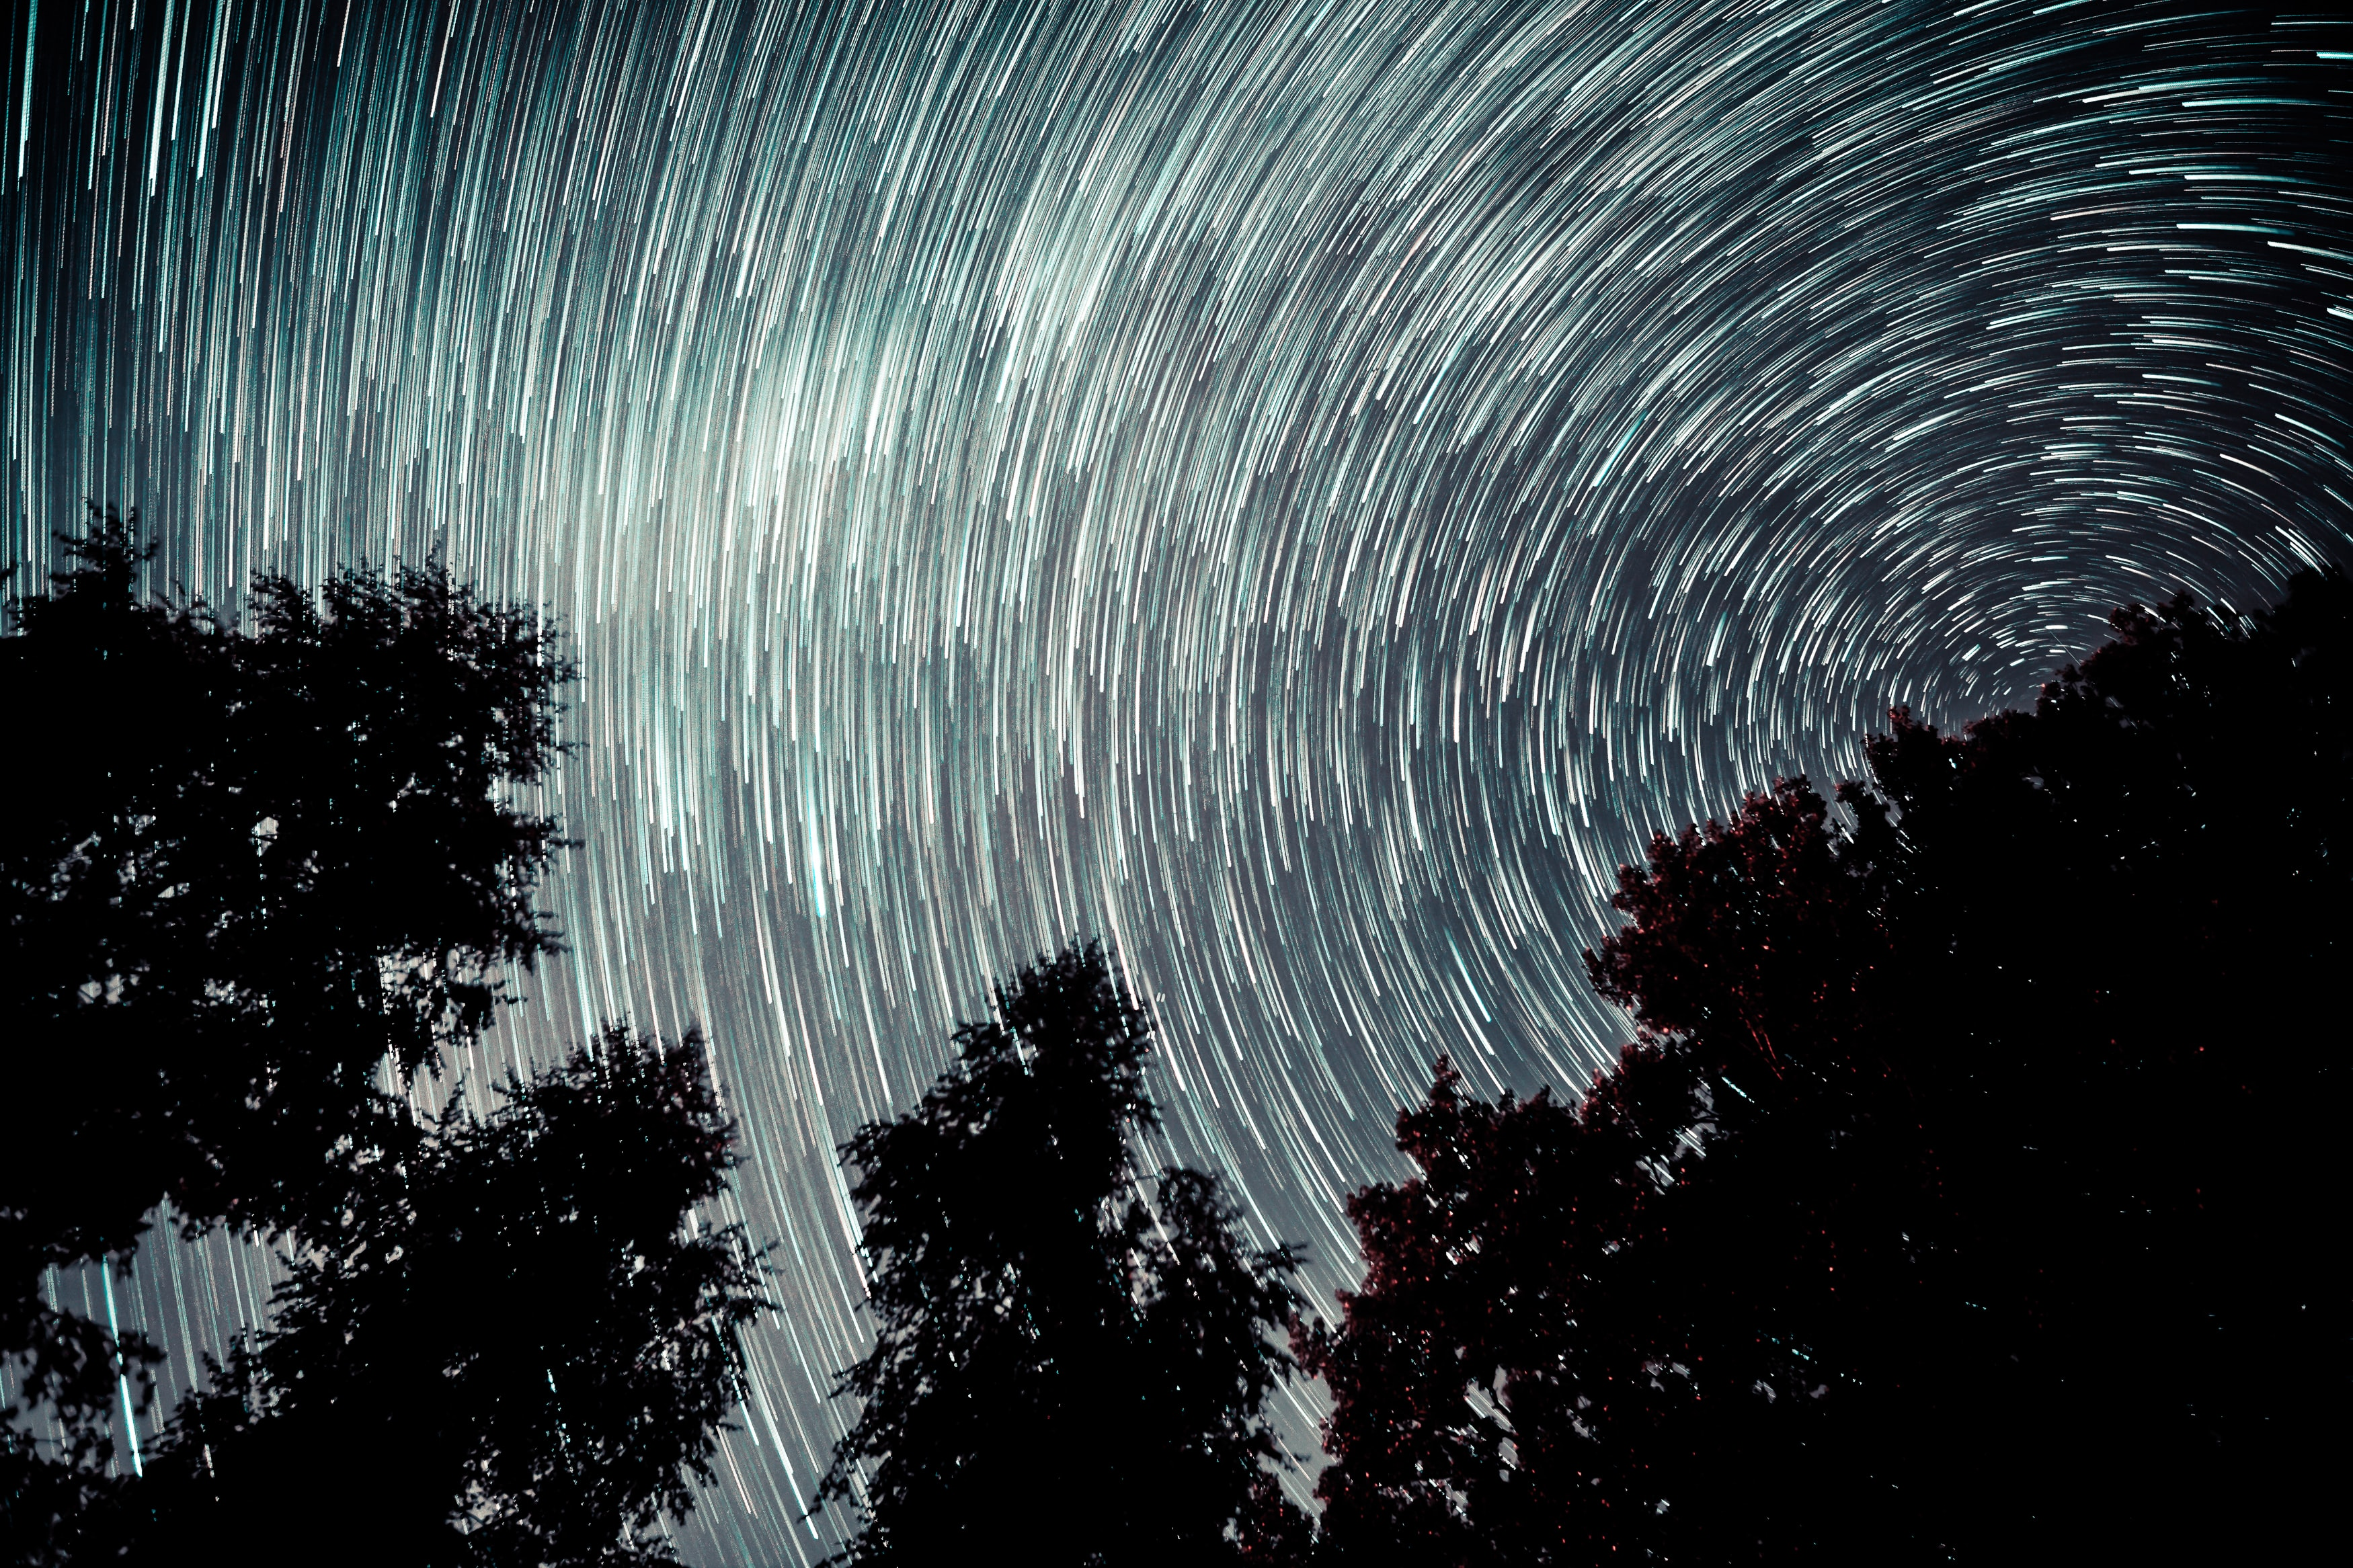 timelapse photography of starry sky